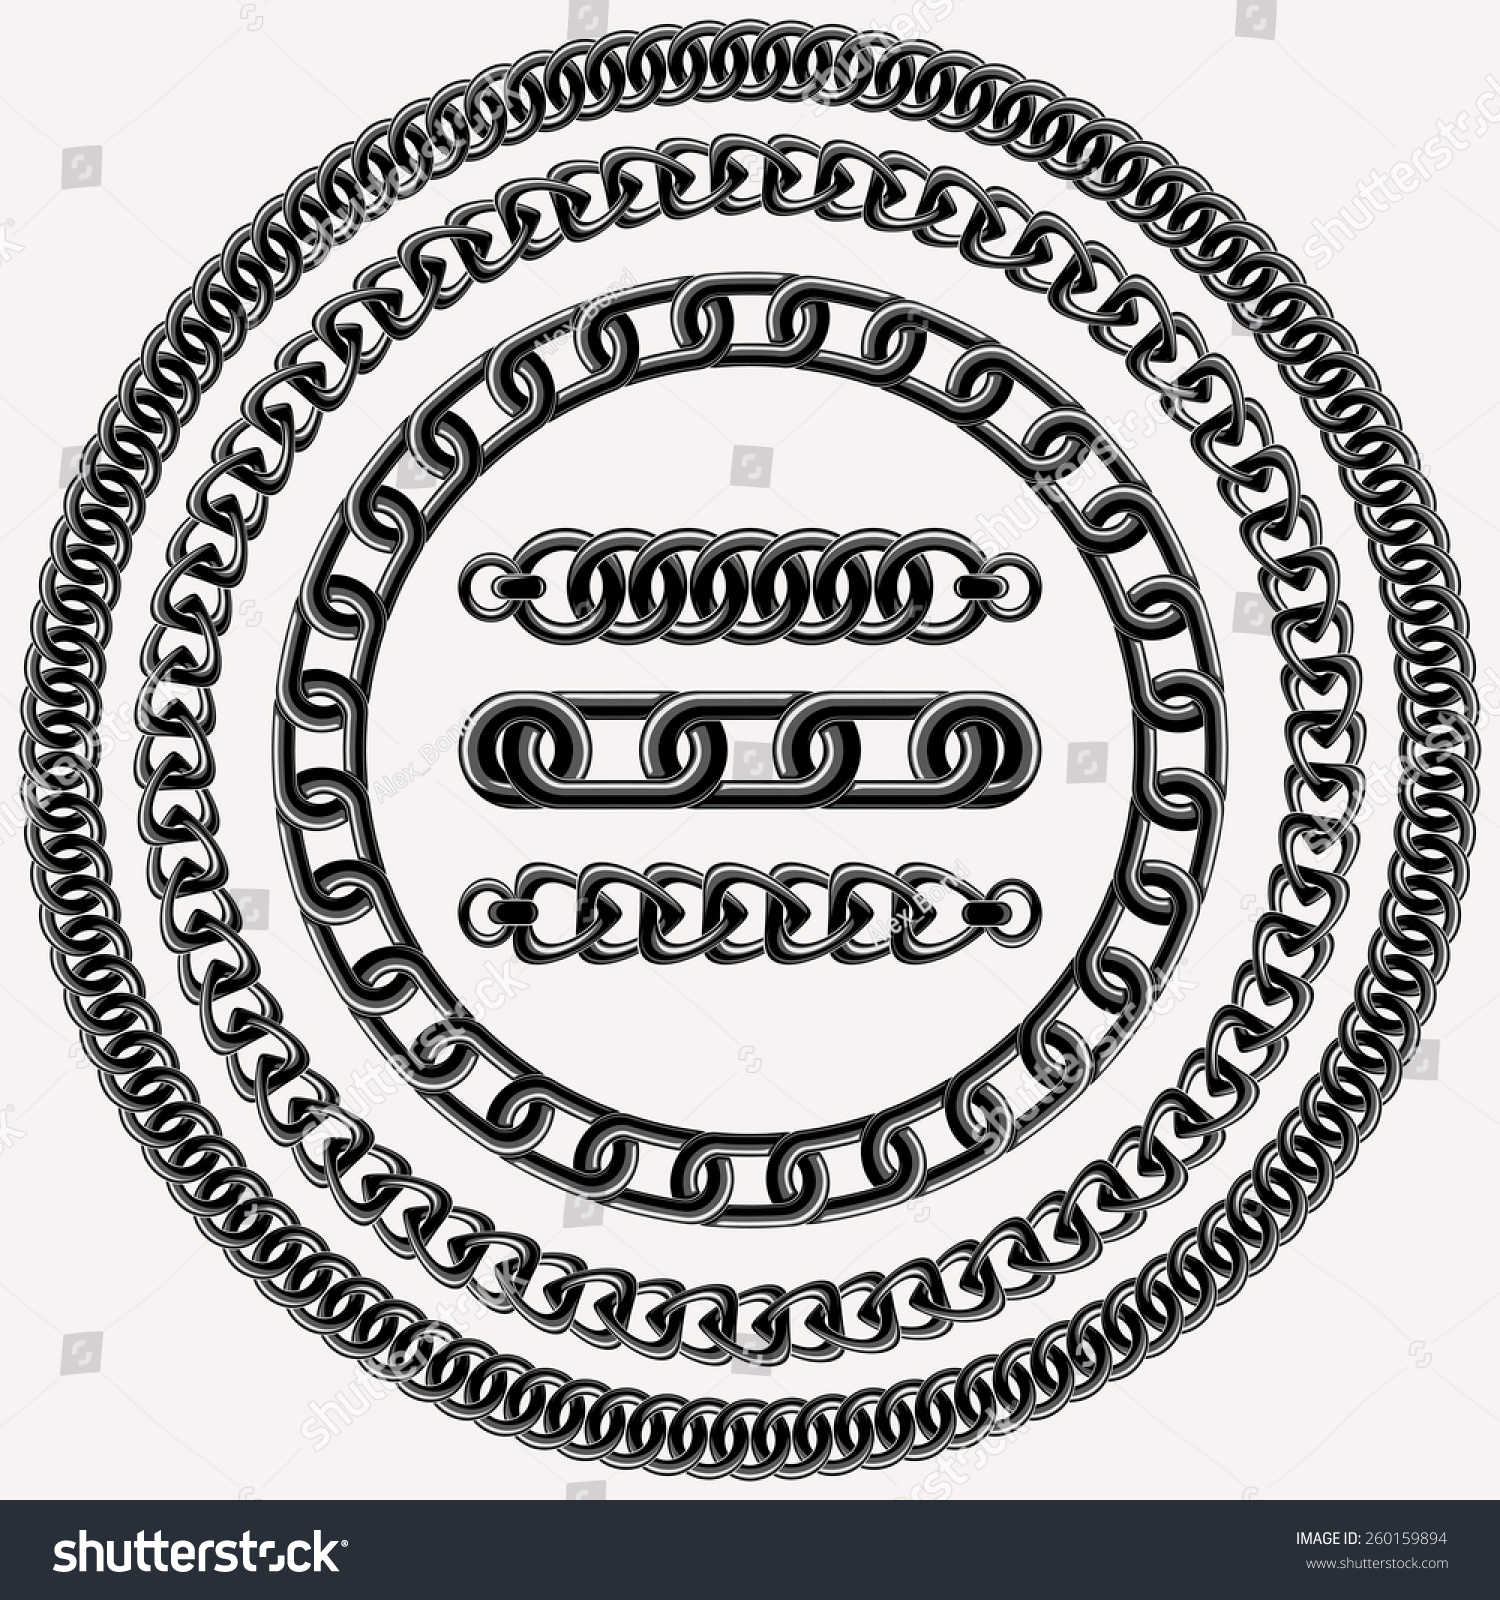 vector decorative chain design elements and three brushes for illustrator - Decorative Chain